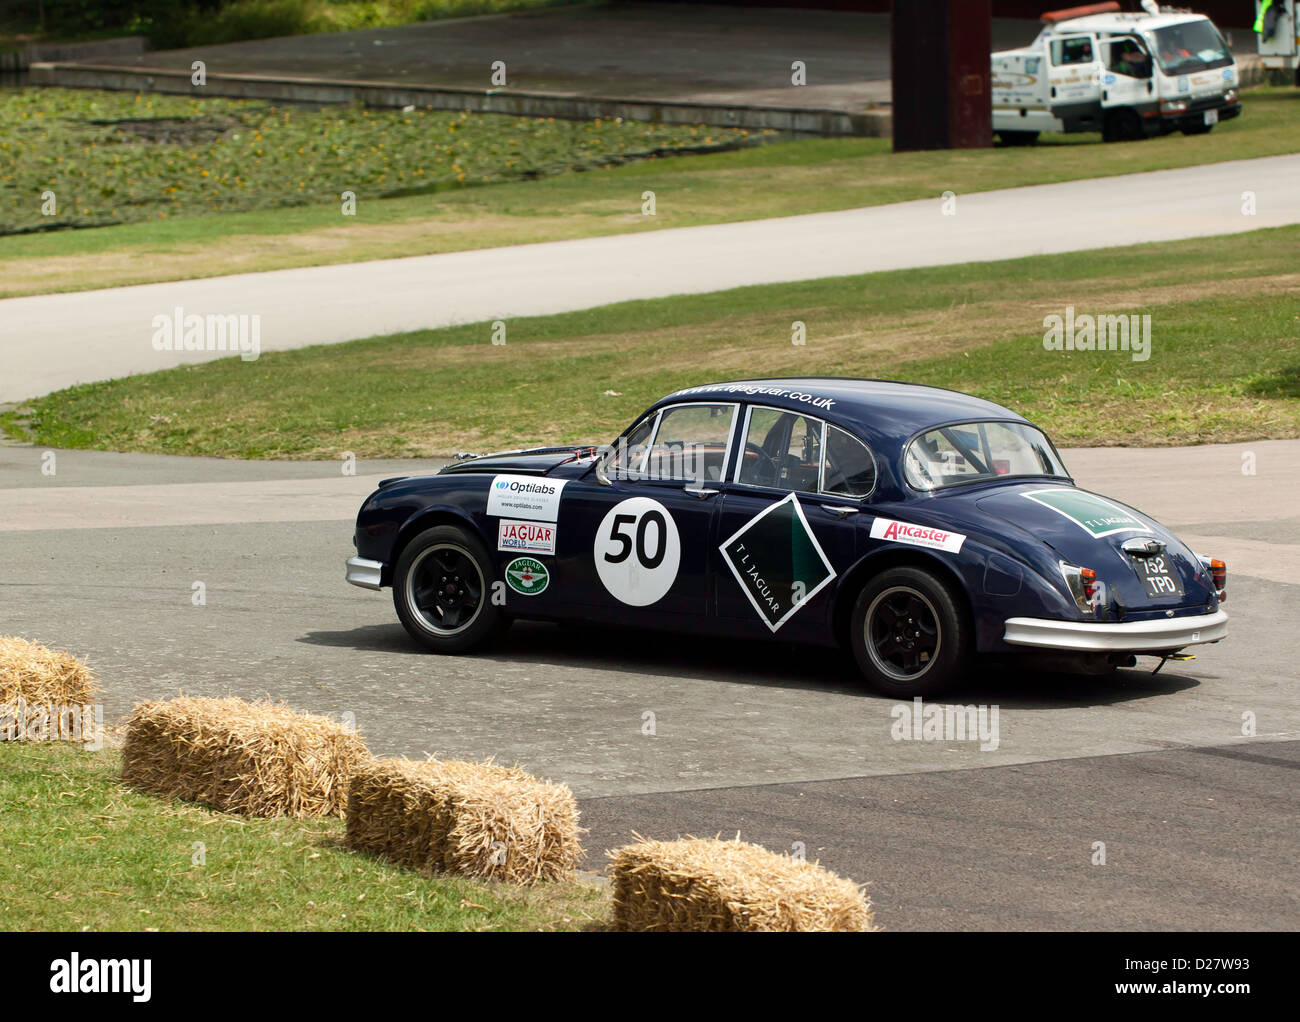 Derek Pearce driving a 1961 Jaguar MkII, in the Sprint event at motorsport at the palace 2011 - Stock Image